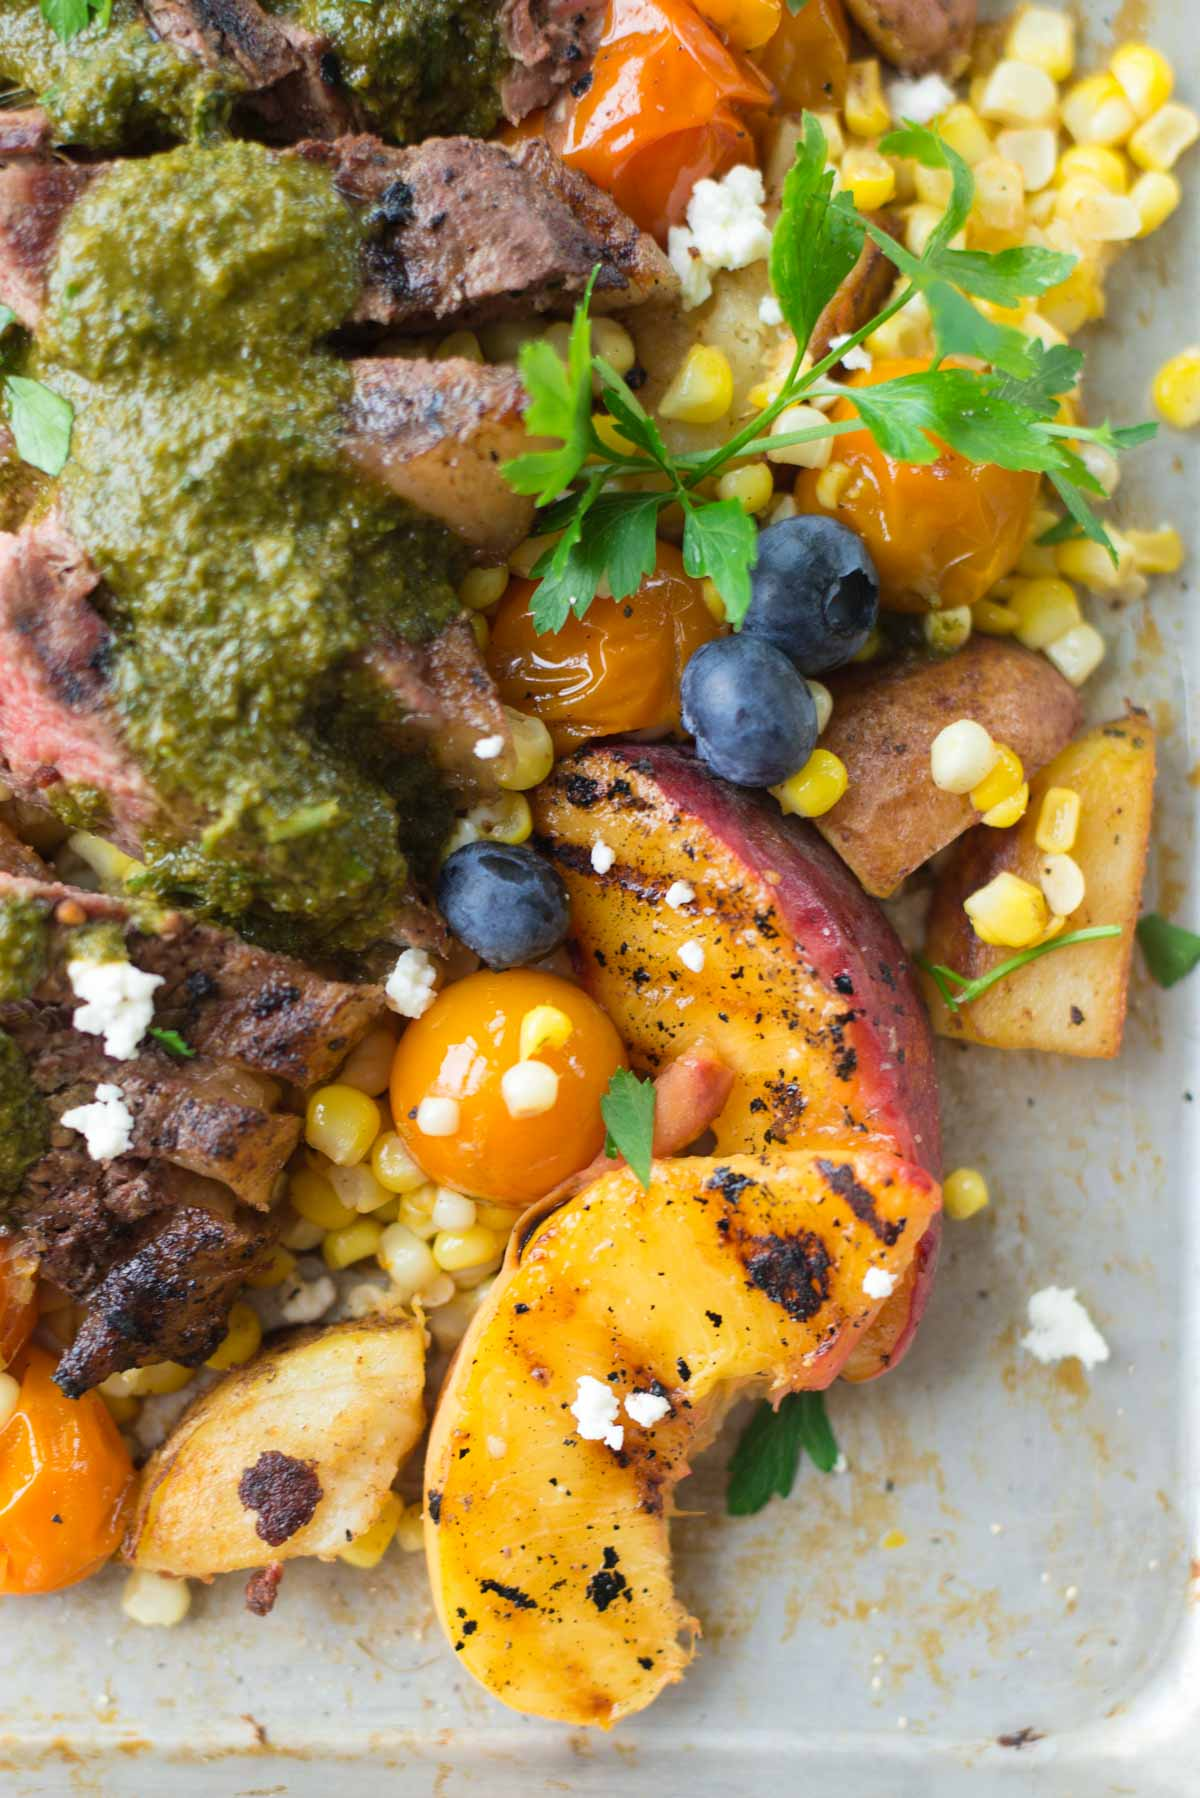 Looking for 30 minute week night dinner? Check out this recipe full of summer produce.